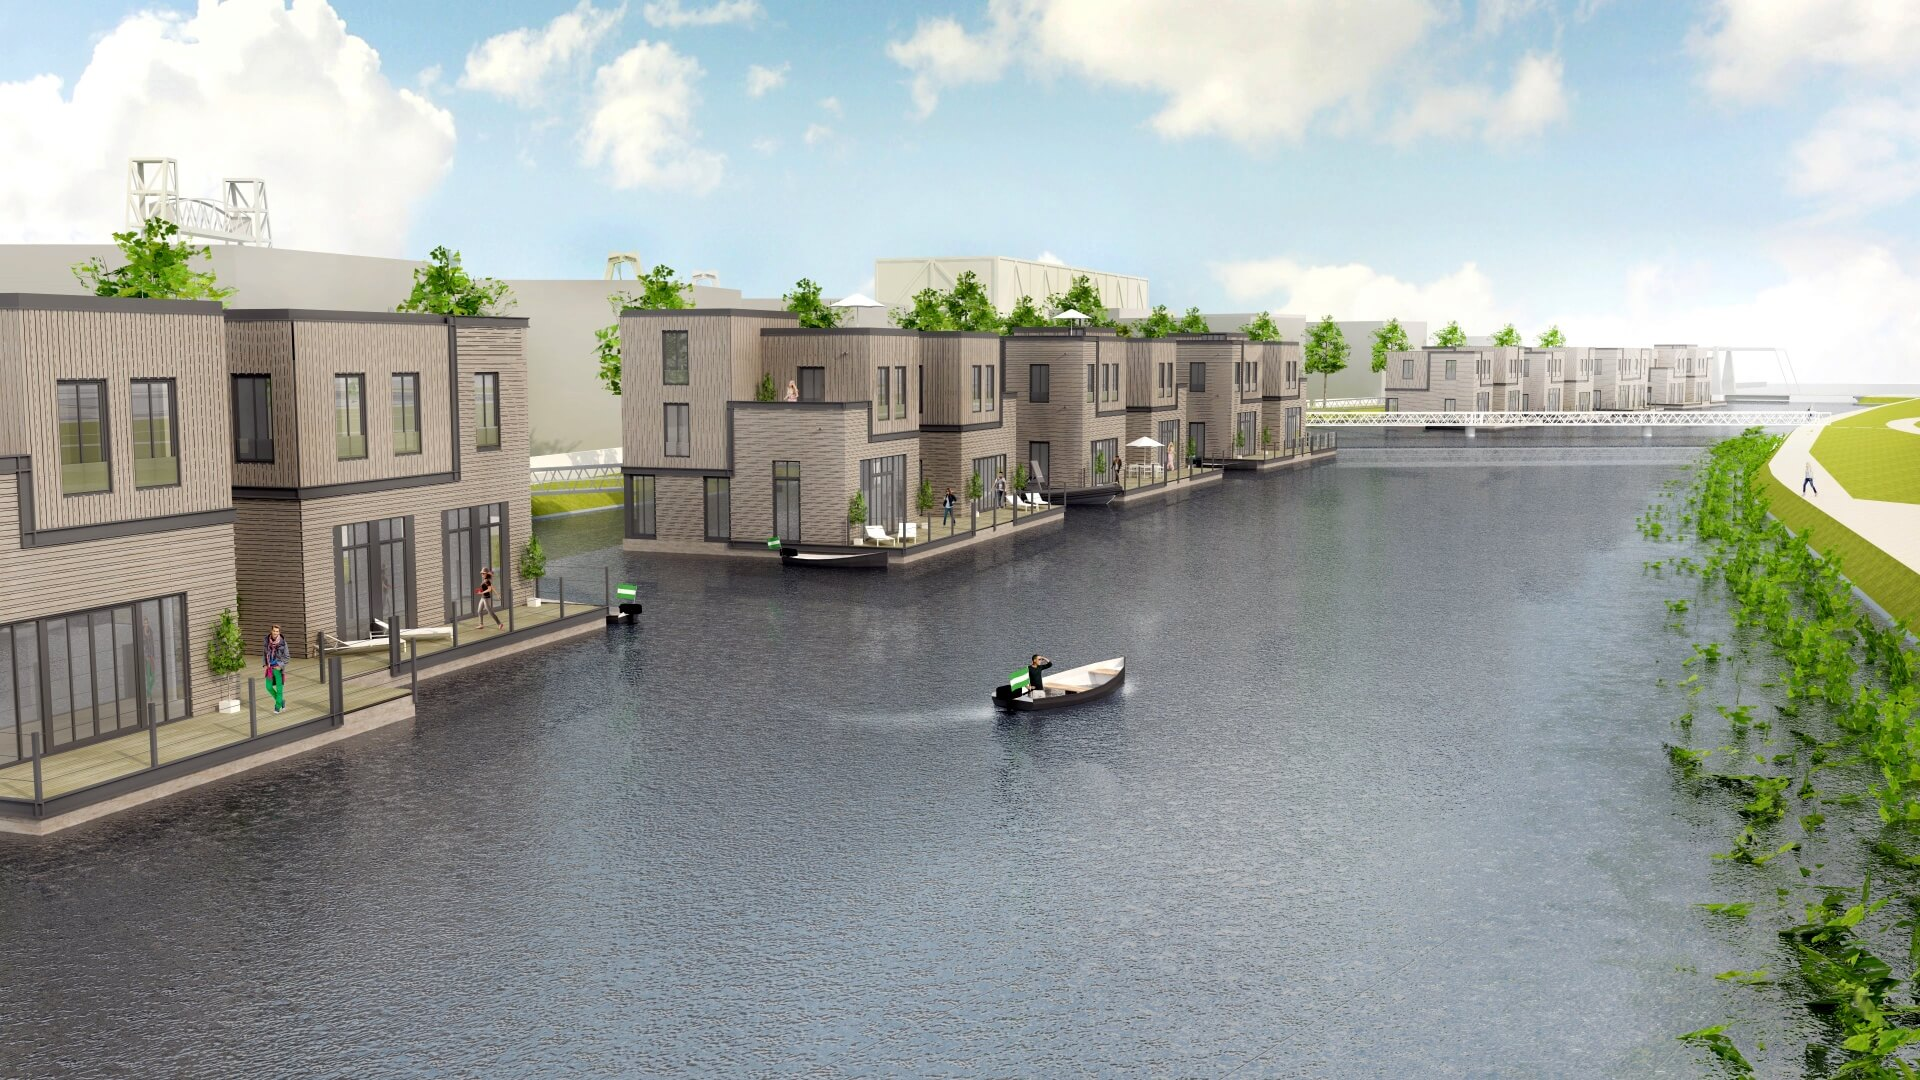 Six more portlofts arrived in Rotterdam's Nassauhaven